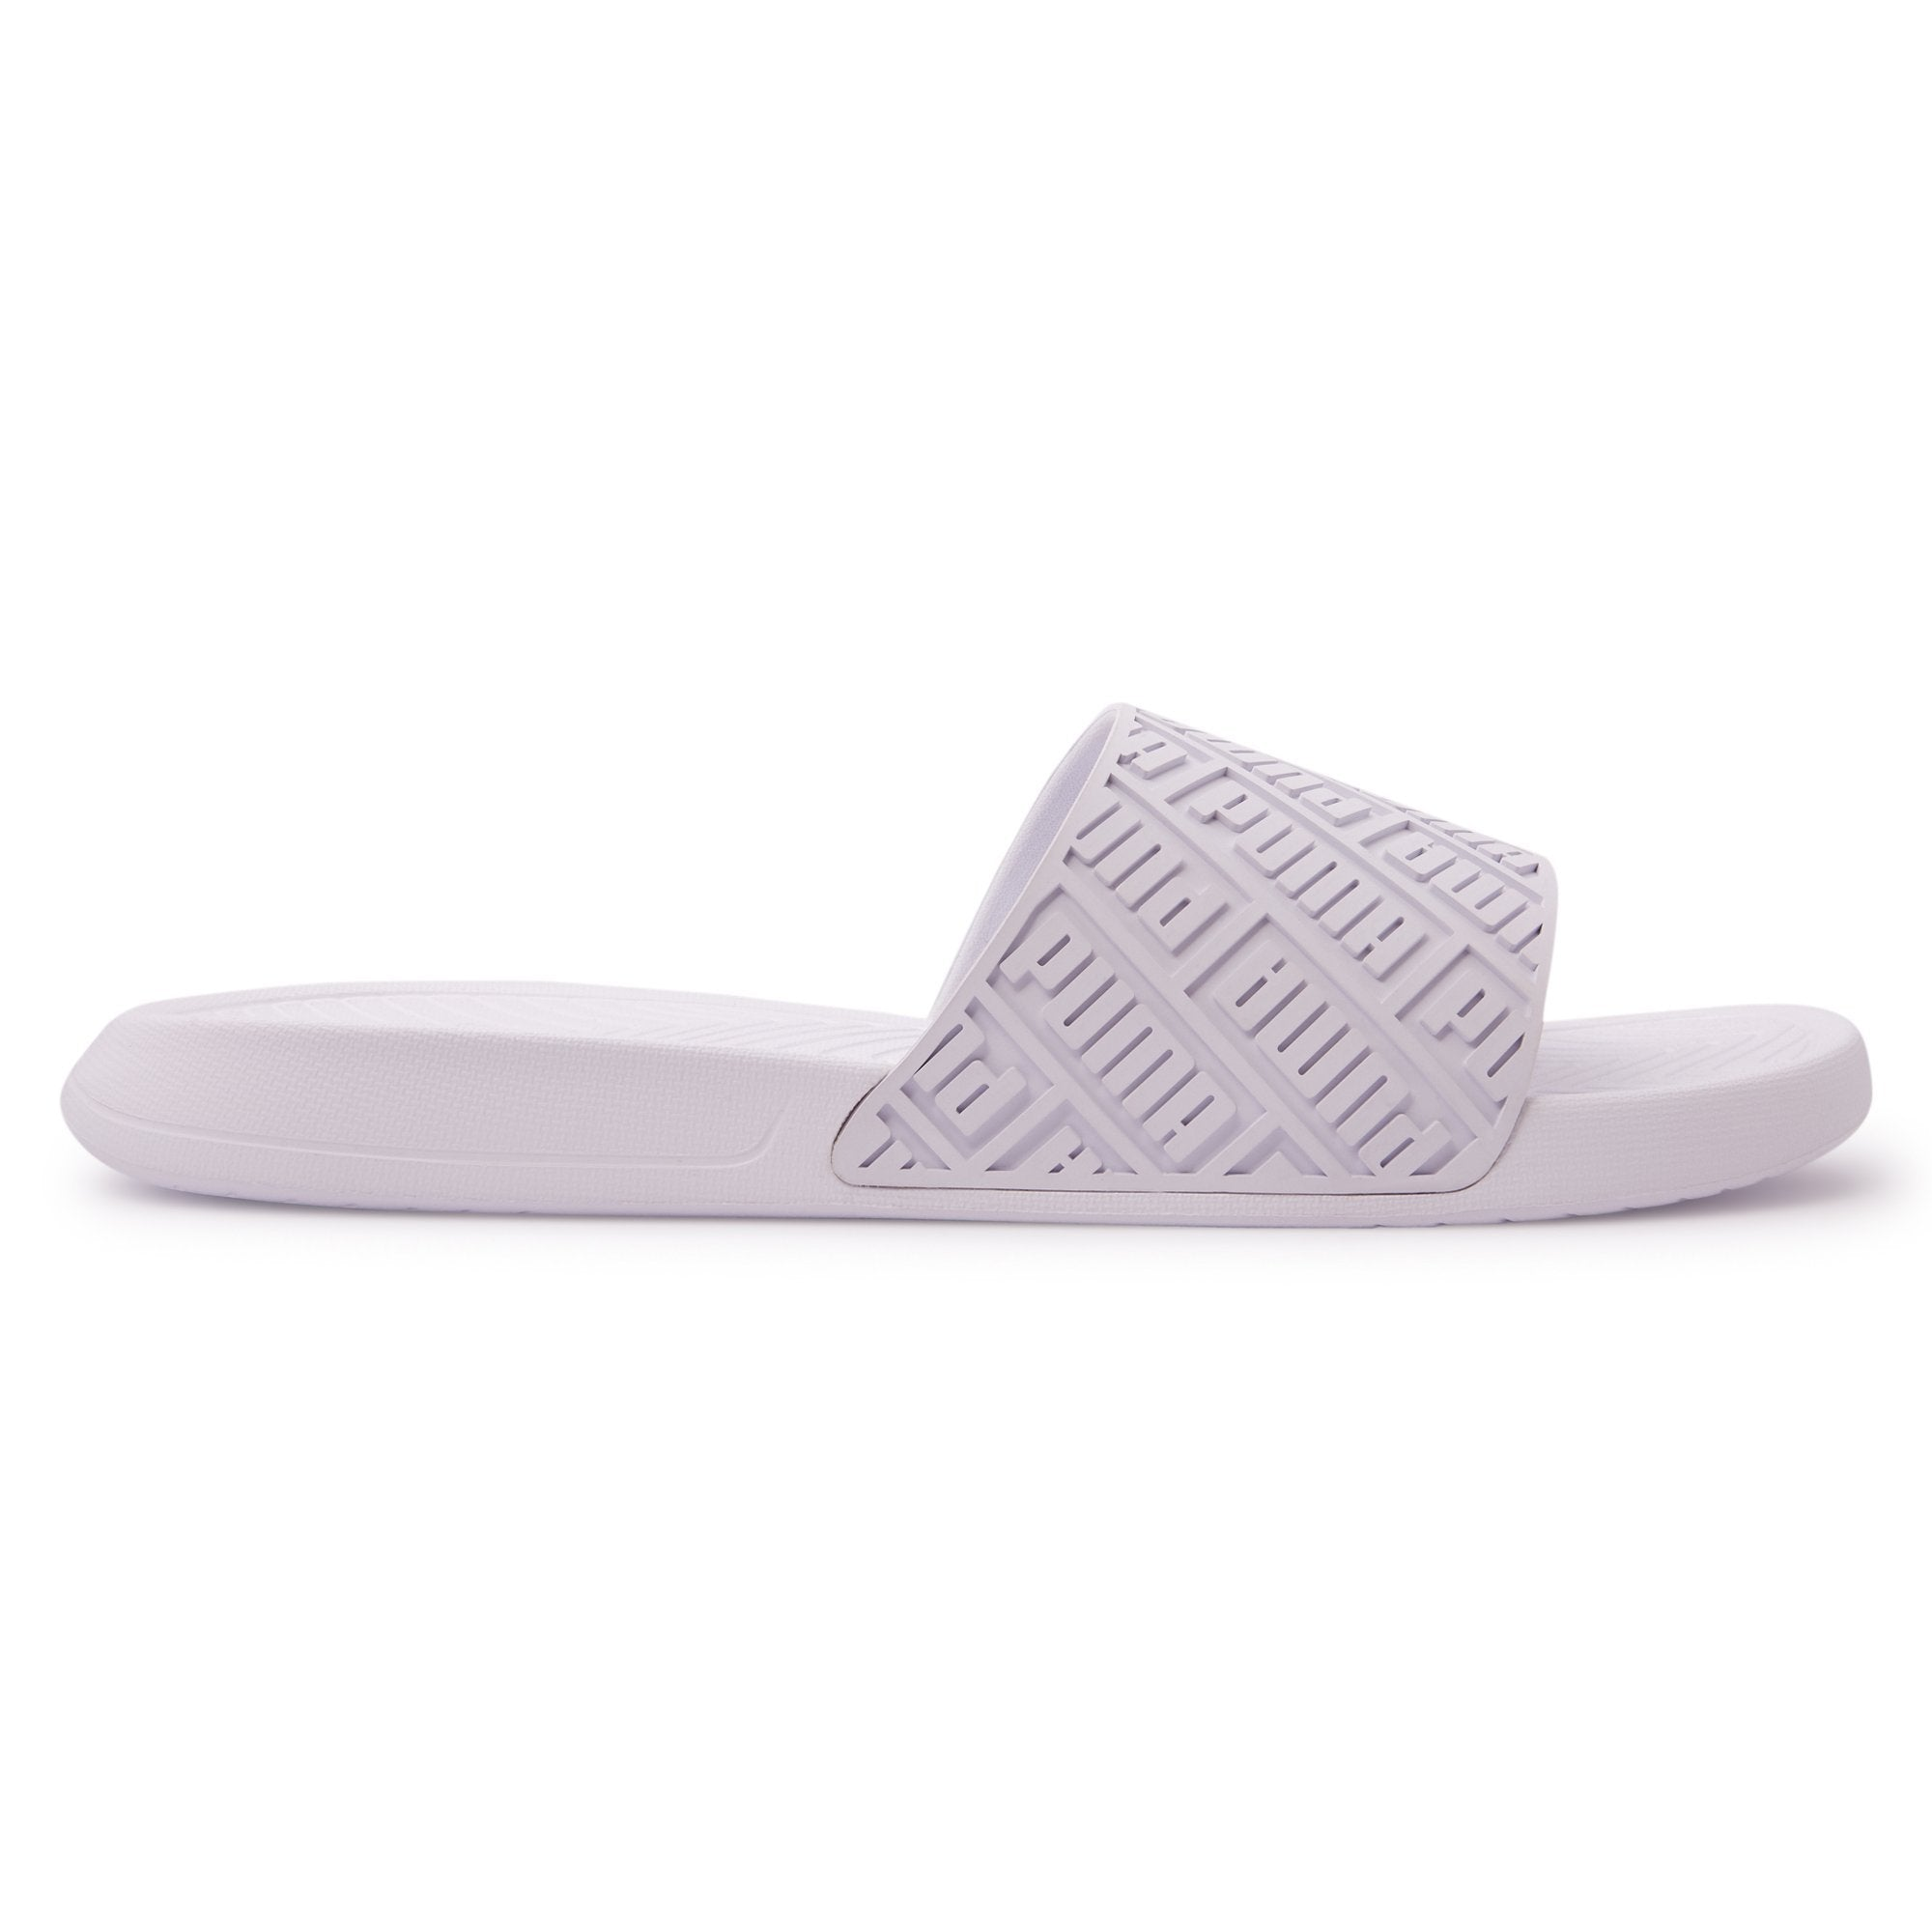 Puma Mens Popcat Rubber Slide - White- White SP-Footwear-Slides Puma  (2122604576827)